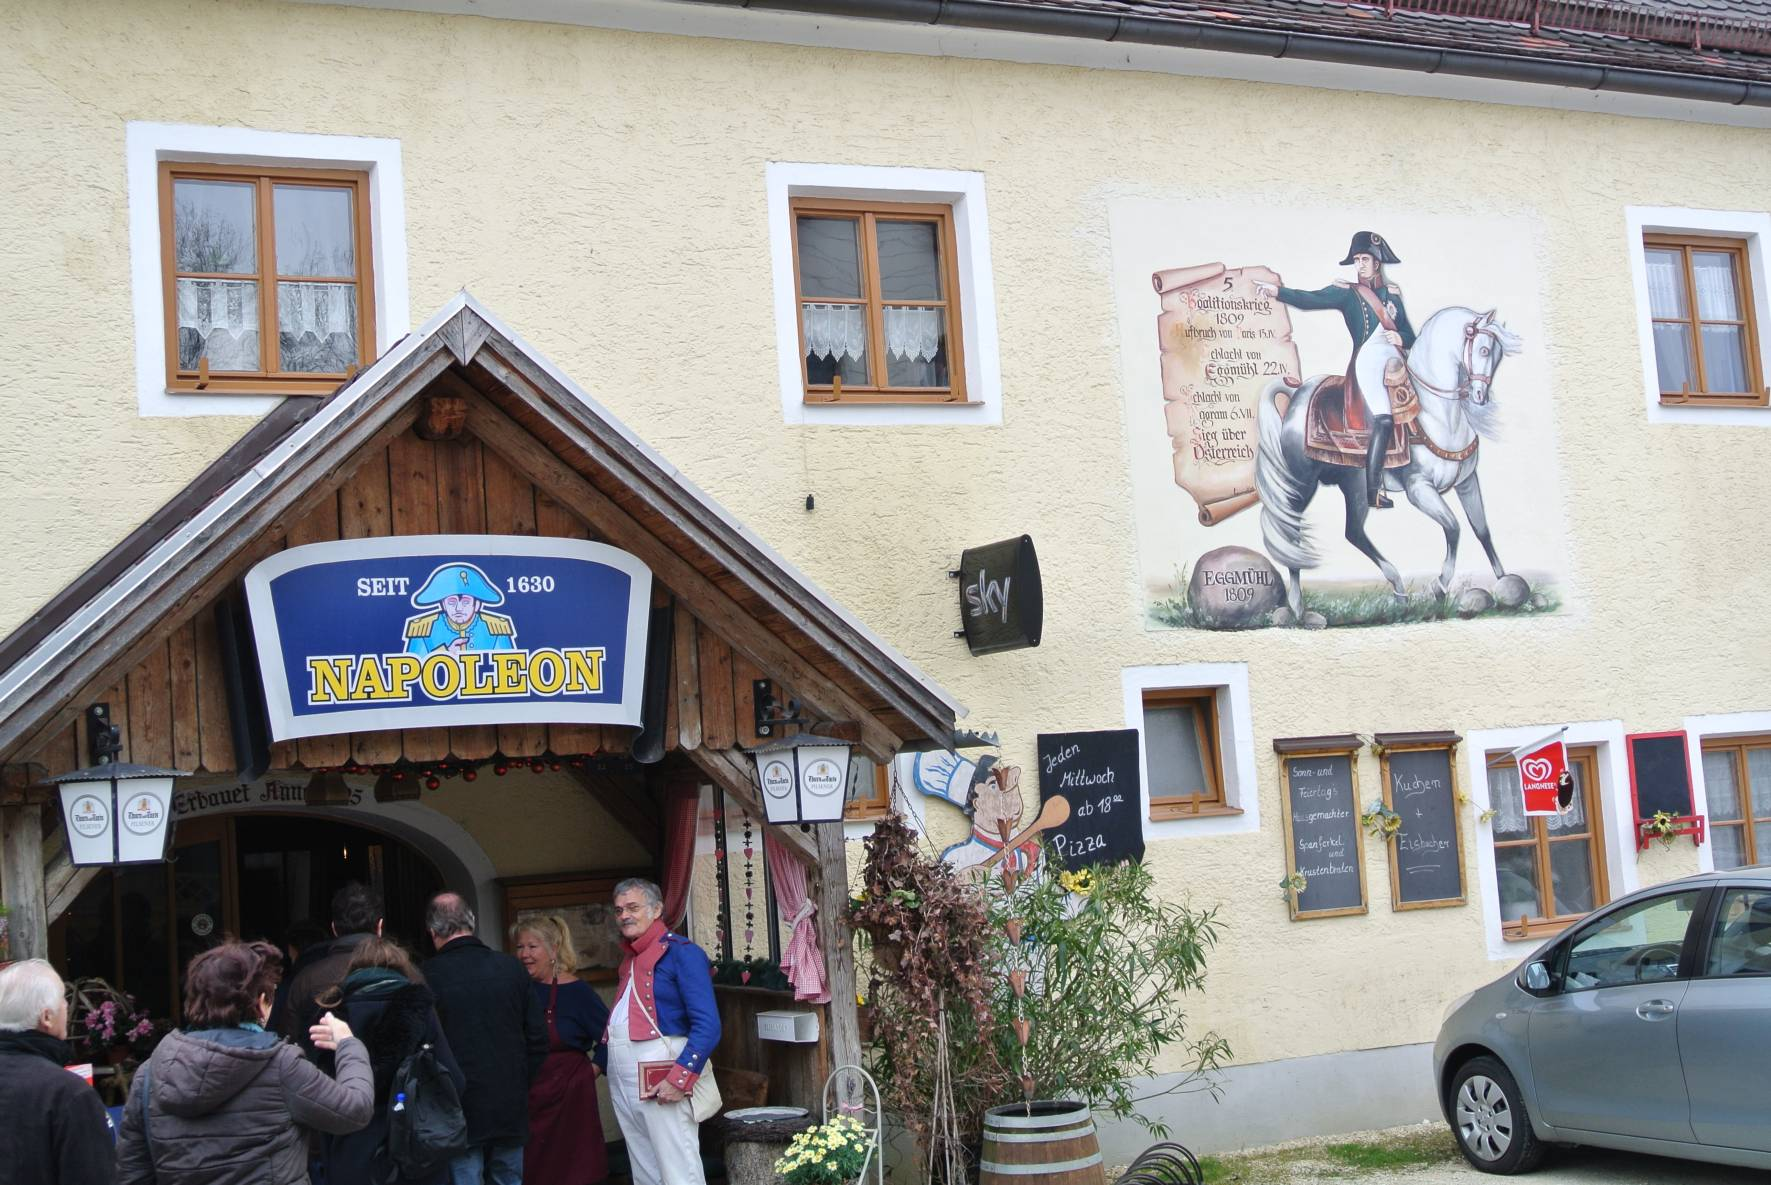 Gasthaus Napoleon in Eggmühl April 2017